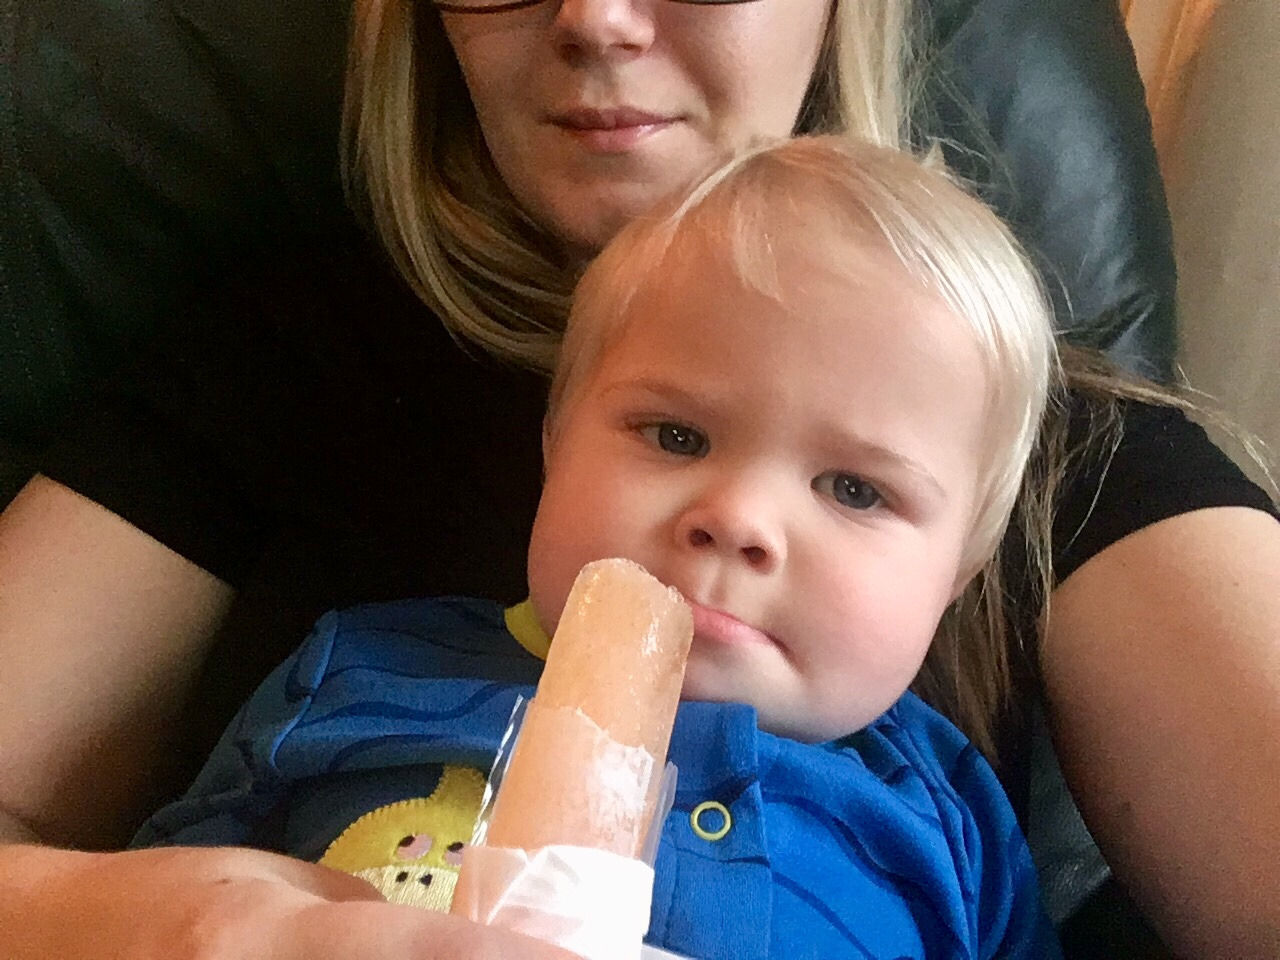 Baby boy stubbornly refusing his Pedialyte popsicle.